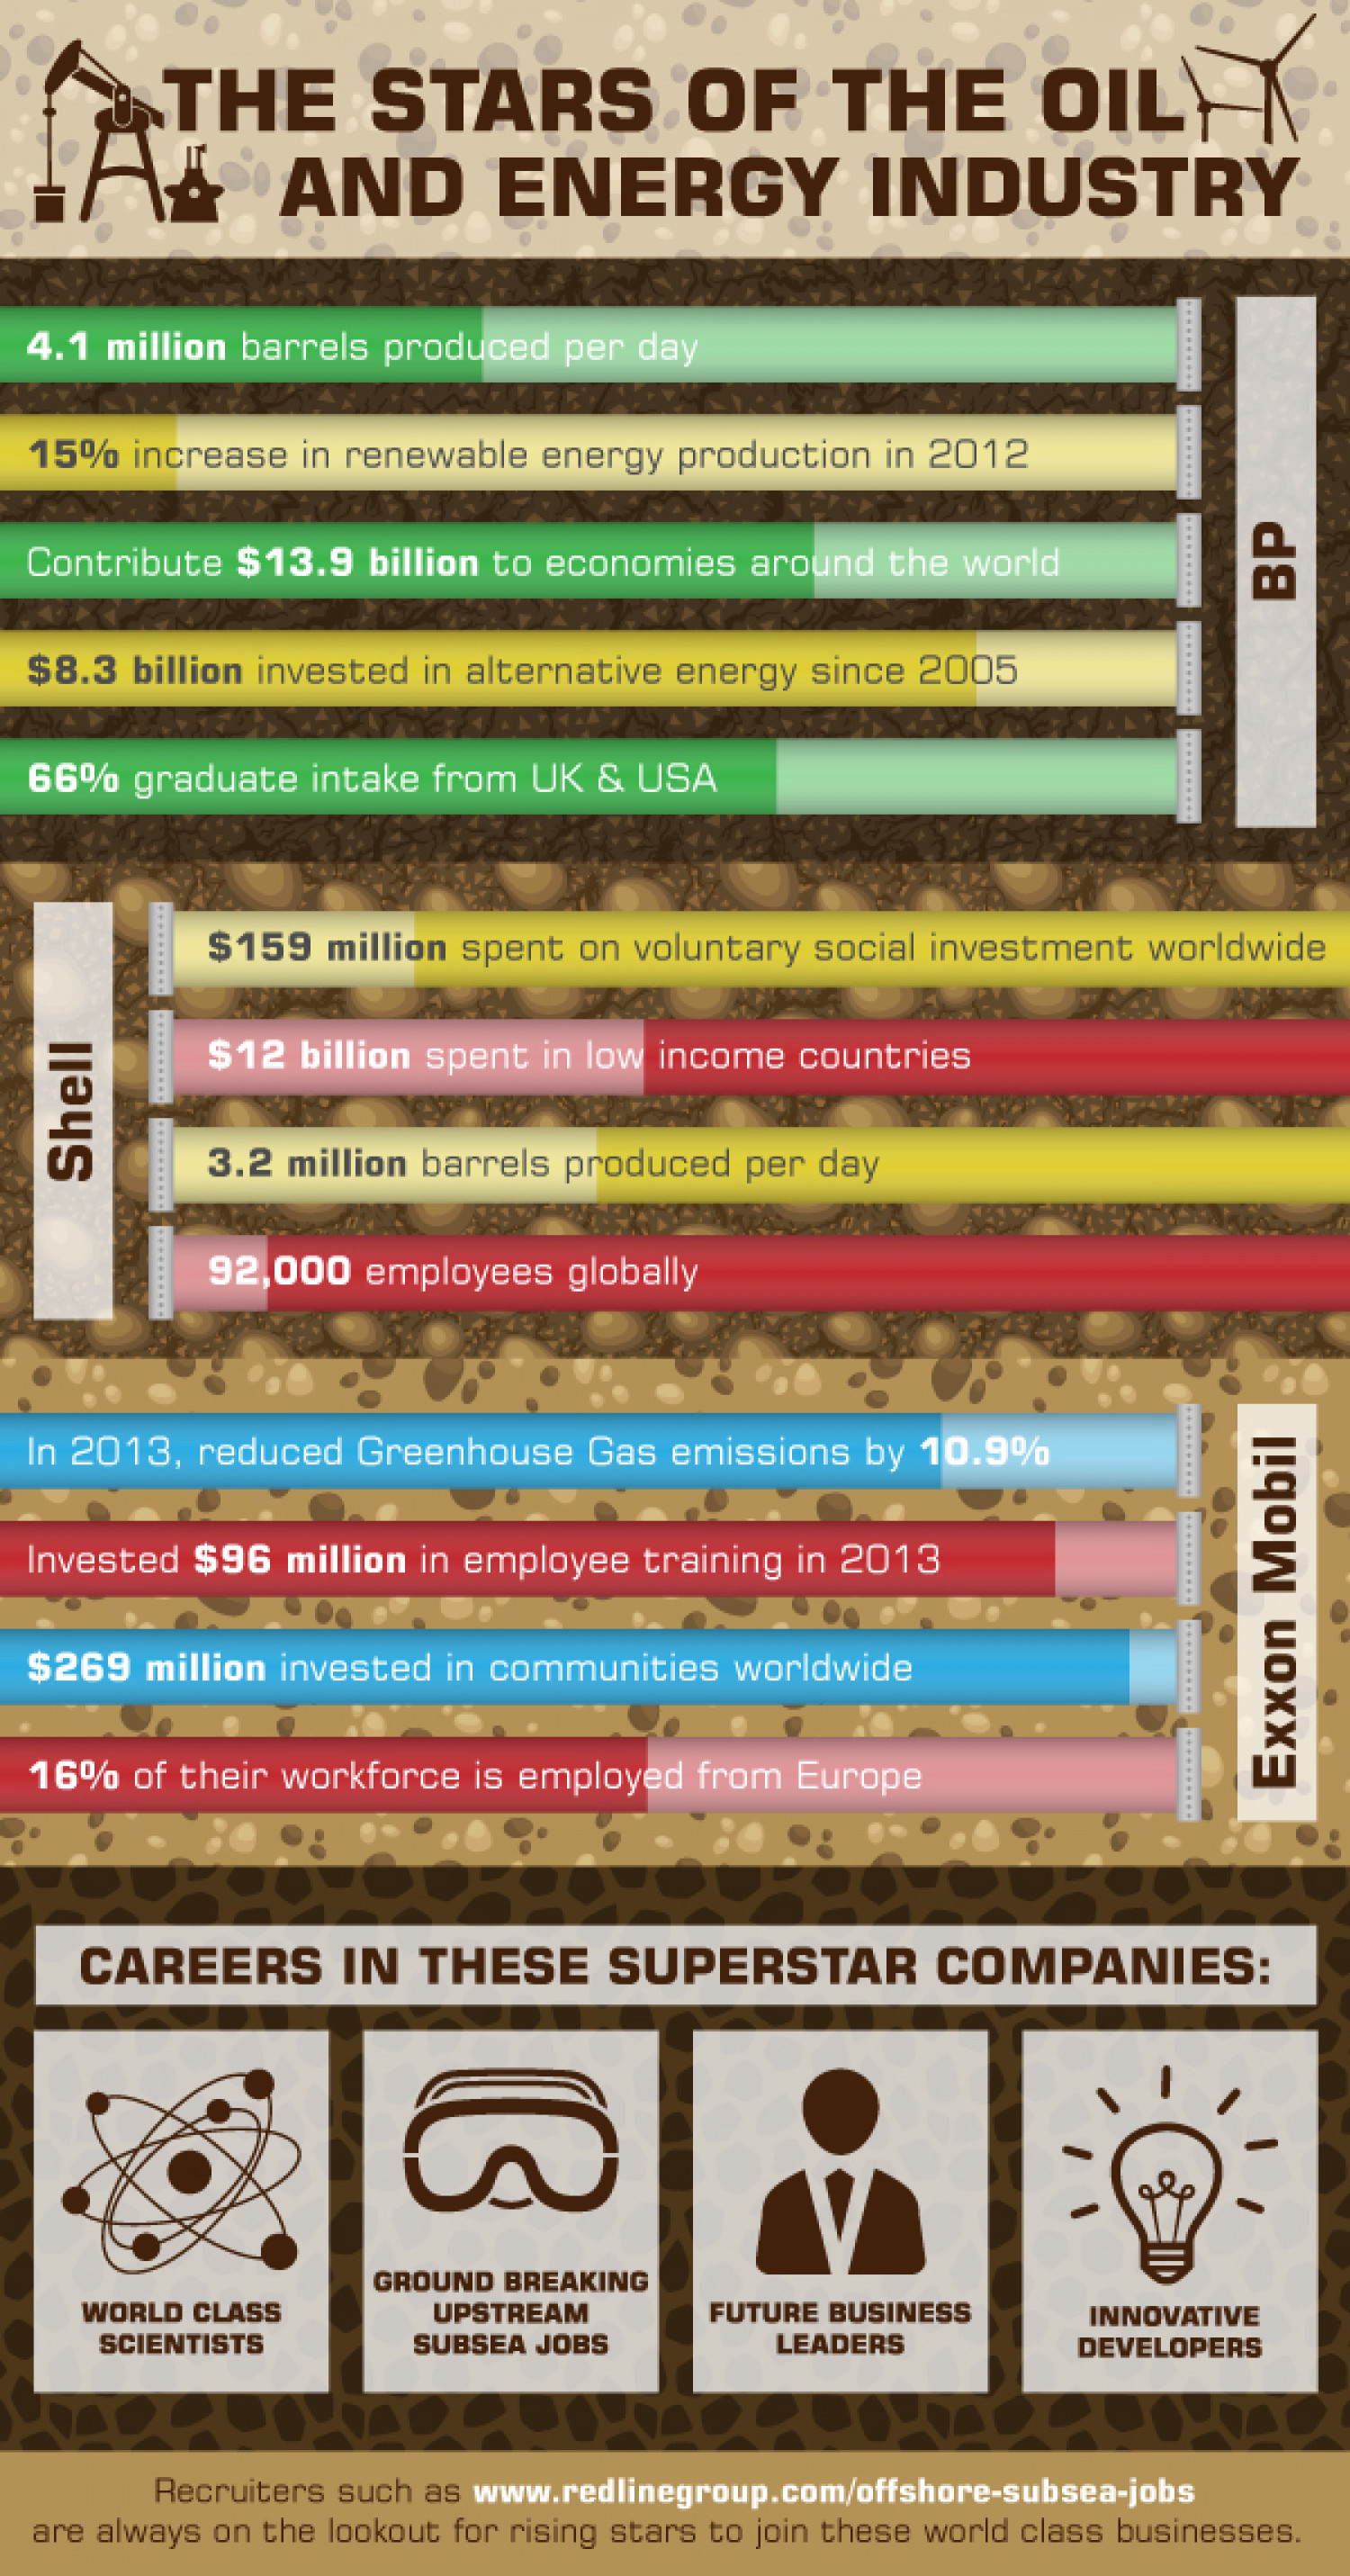 The Stars of the Oil & Energy Industry Infographic